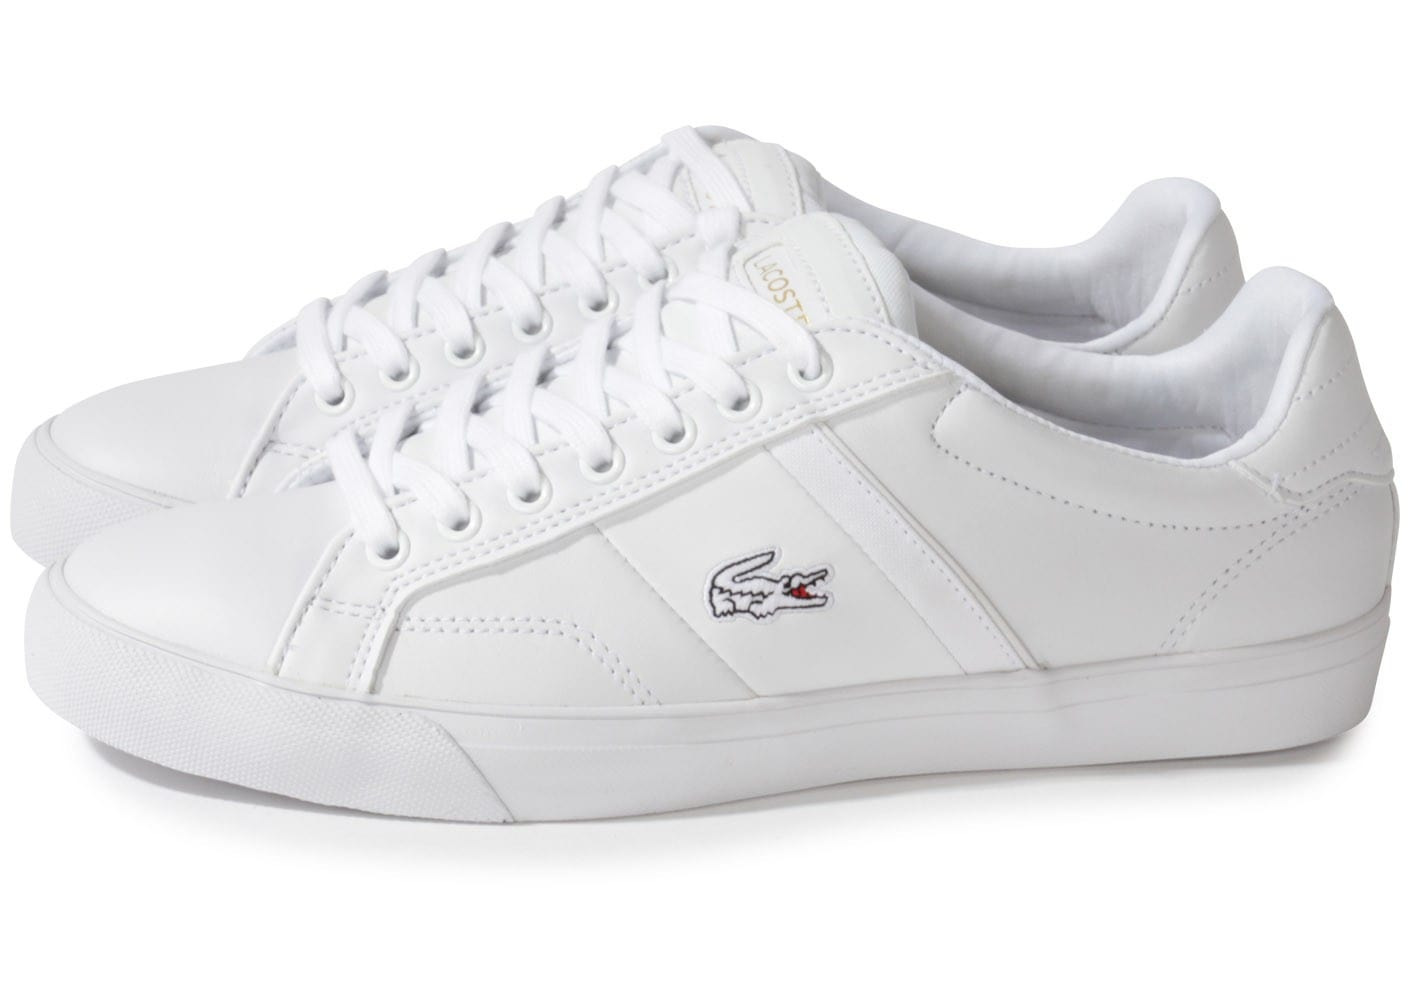 lacoste fairlead blanche chaussures homme chausport. Black Bedroom Furniture Sets. Home Design Ideas